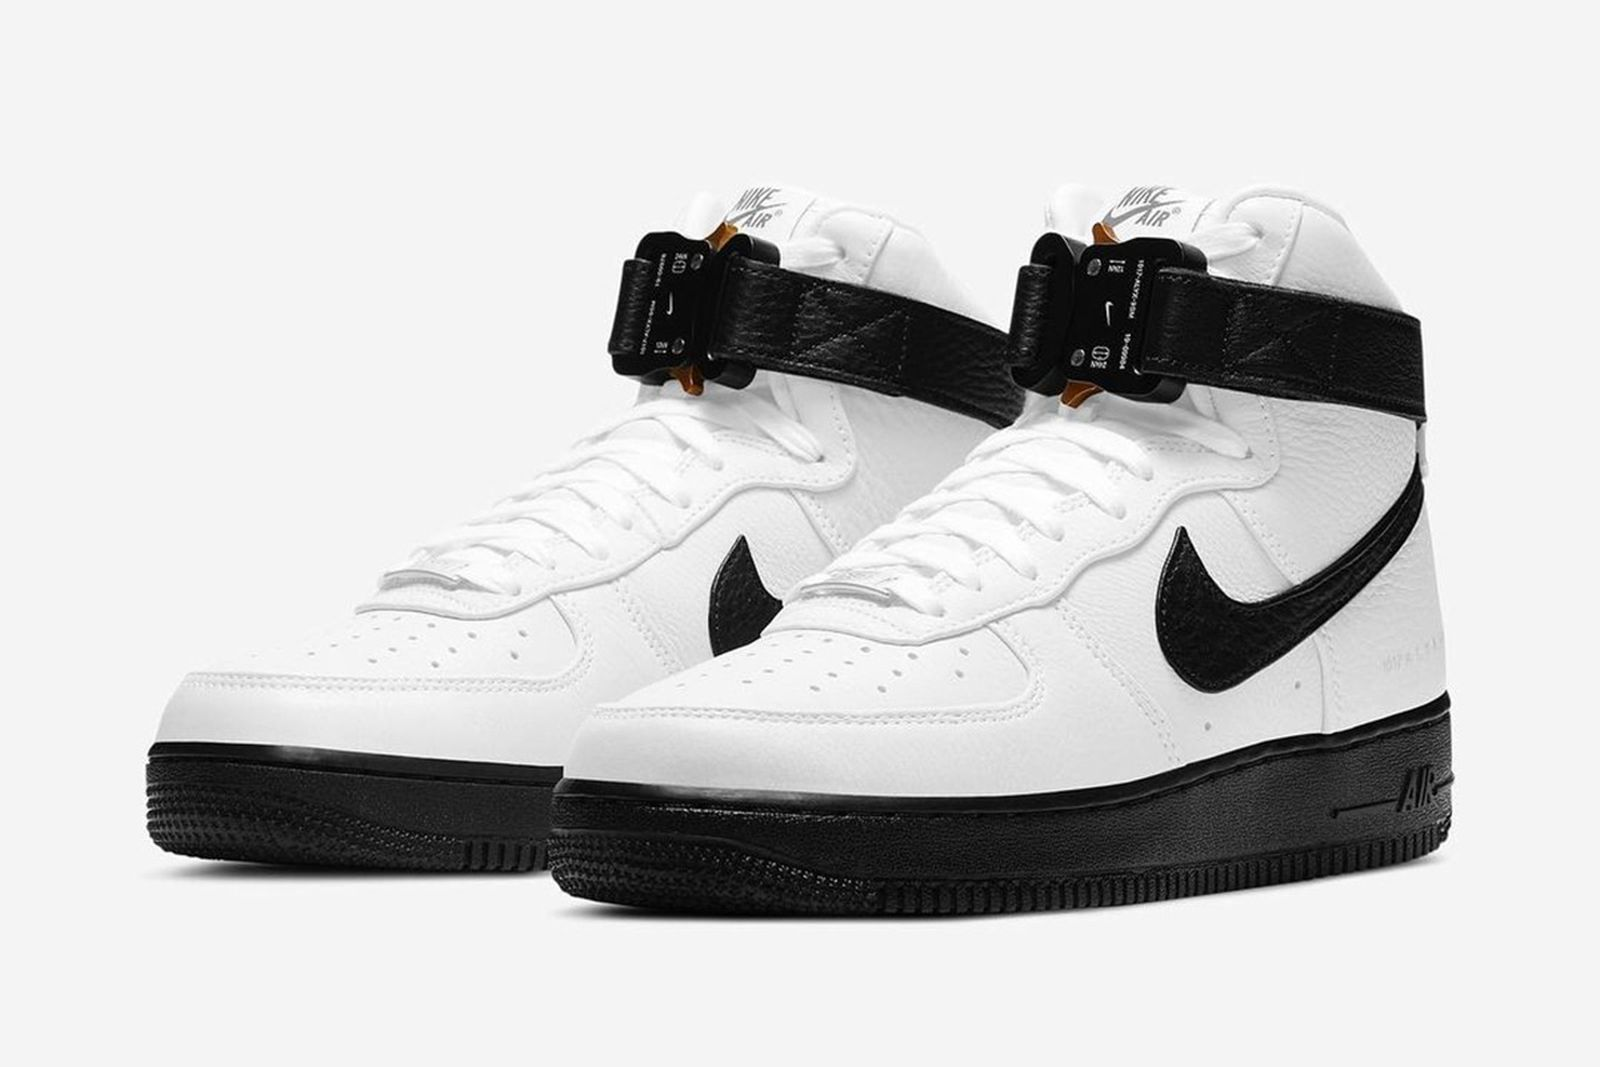 1017-alyx-9sm-nike-air-force-1-high-white-release-date-price-new-05